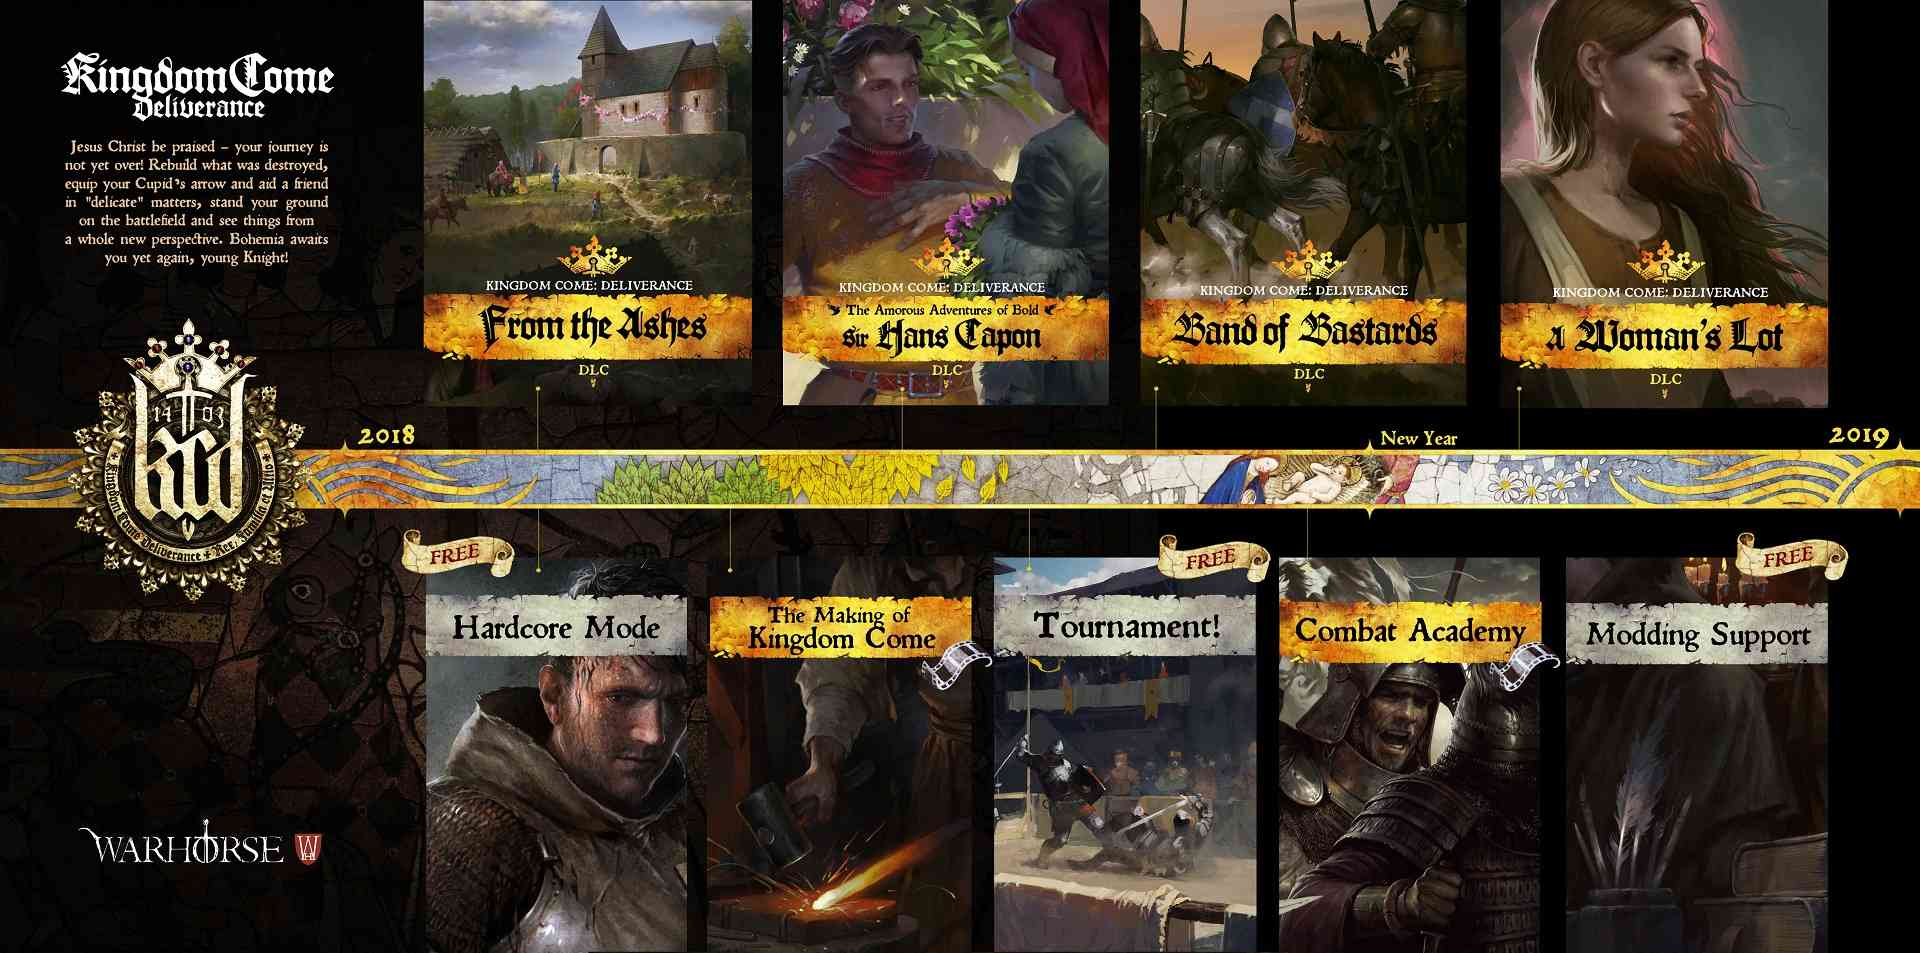 Kingdom Come Deliverance - Roadmap DLC